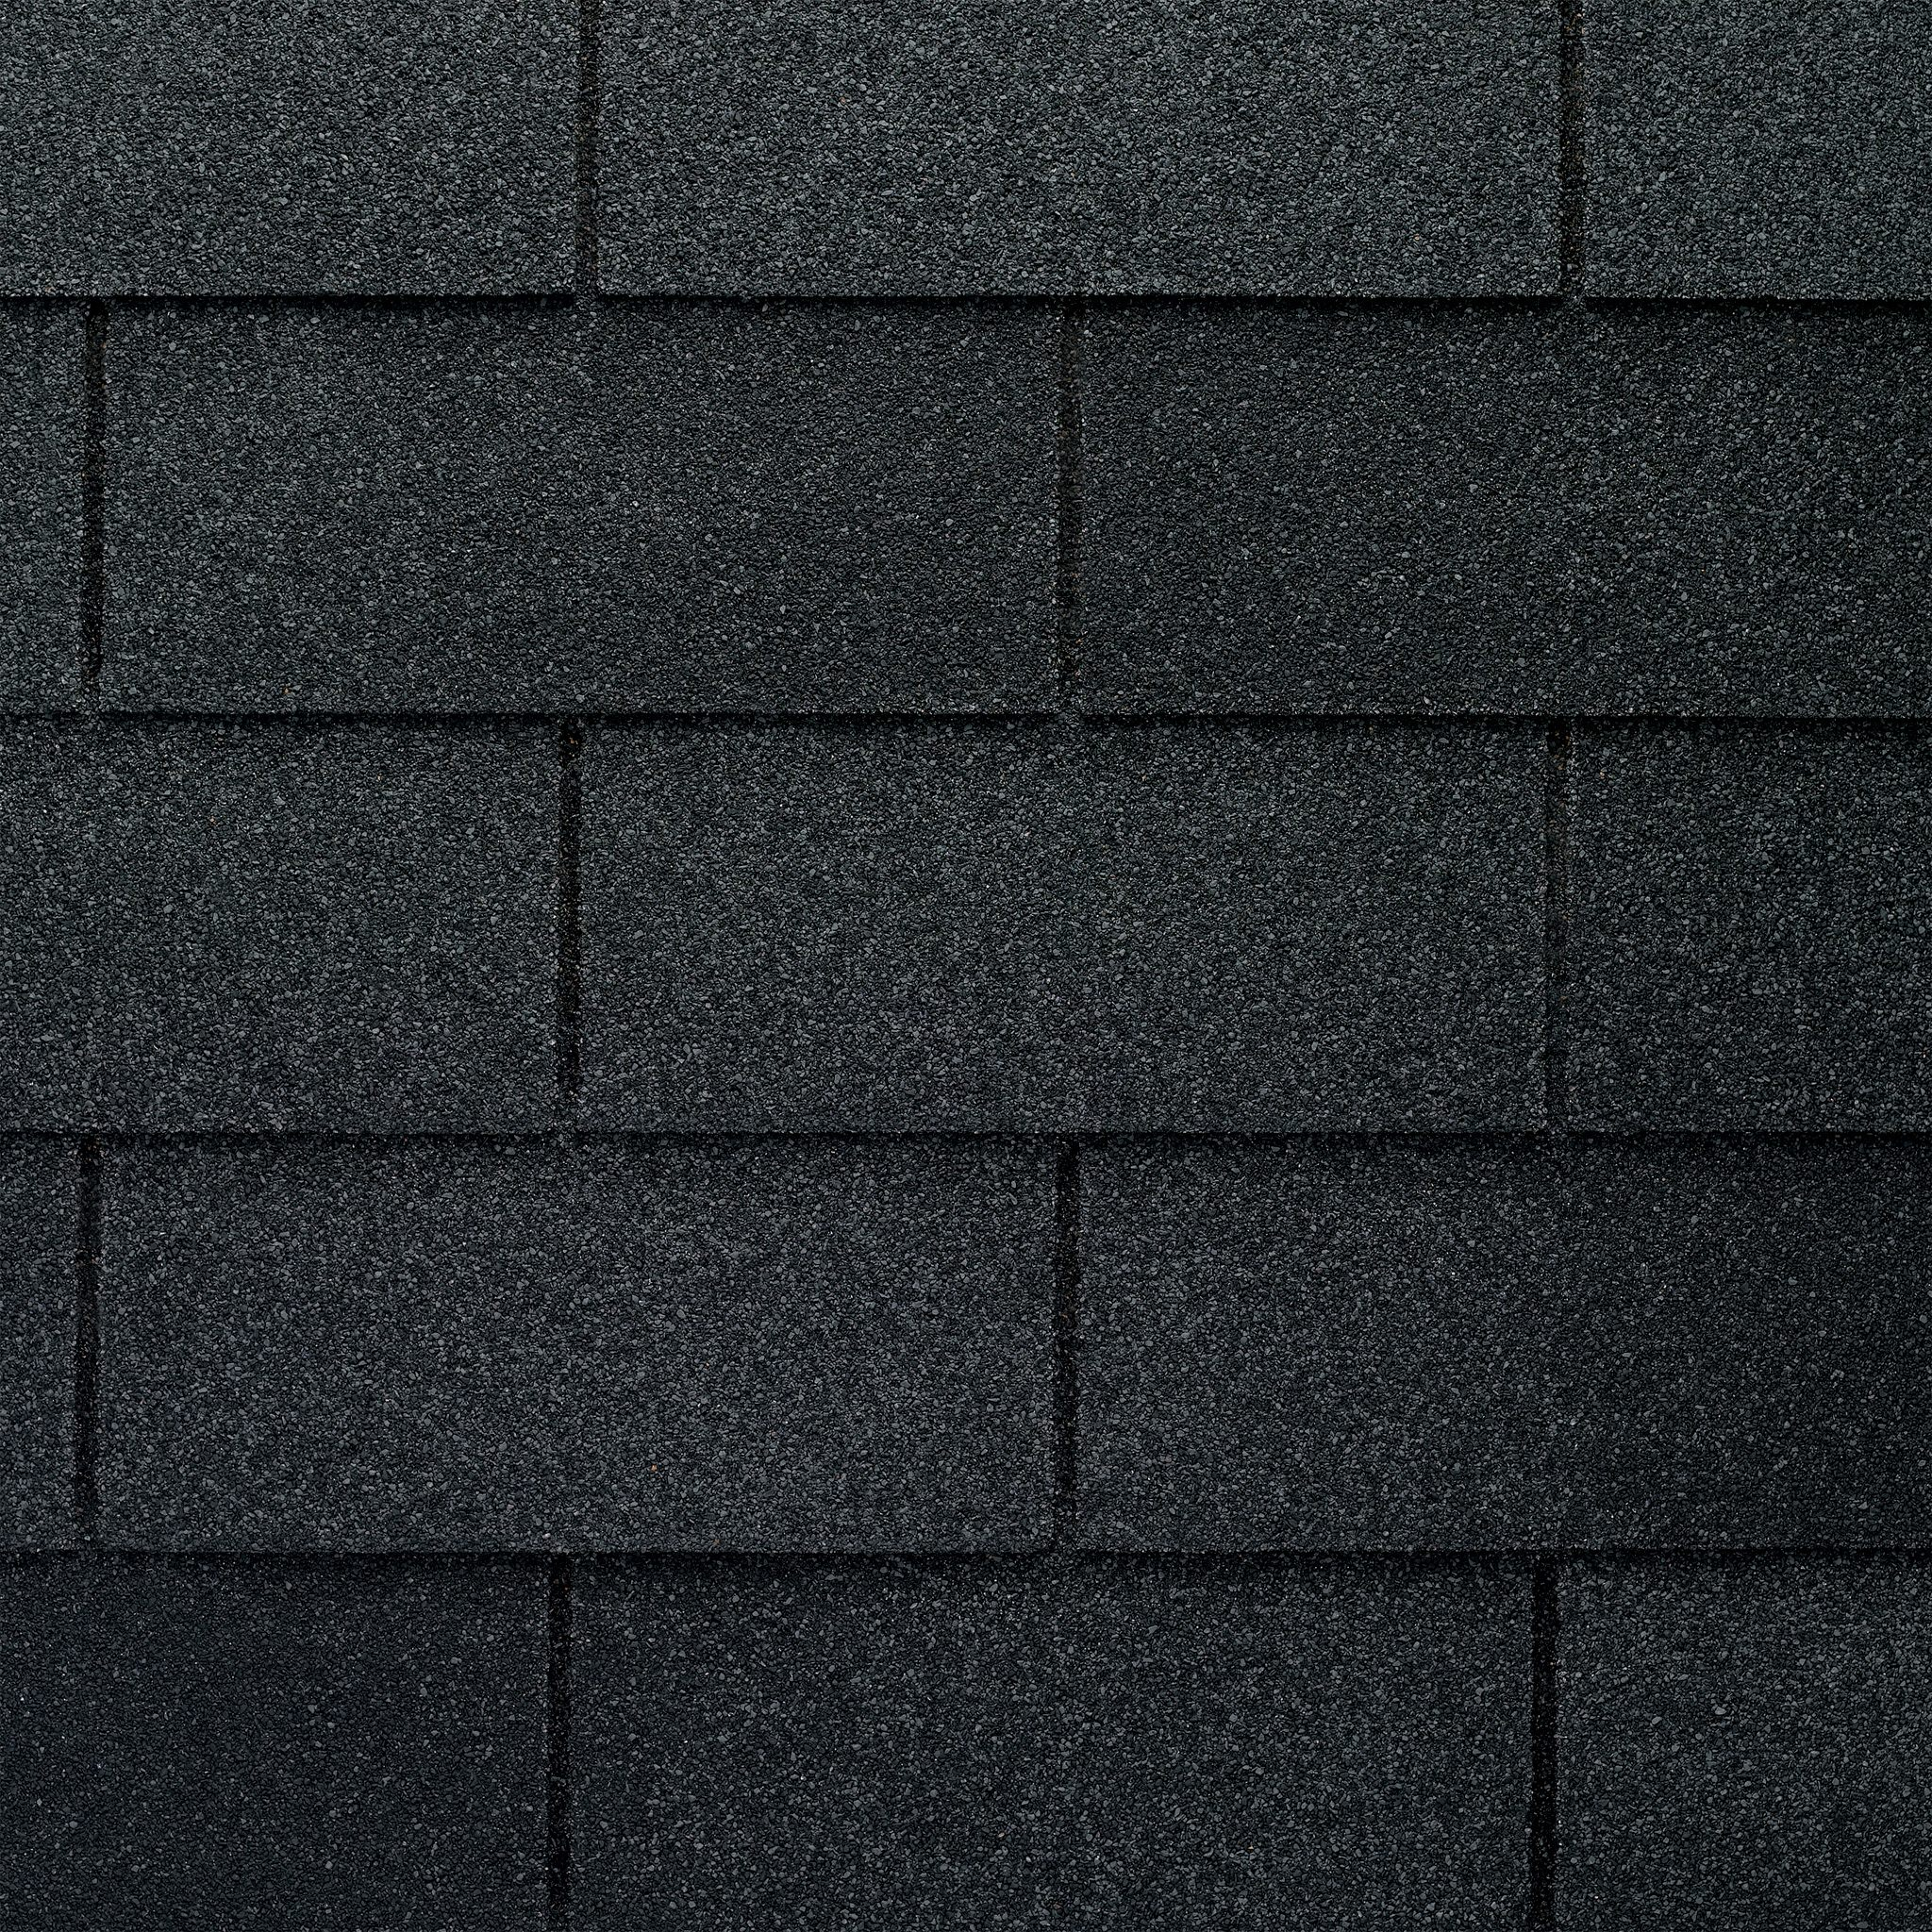 Close up photo of GAF's Royal Sovereign Charcoal shingle swatches